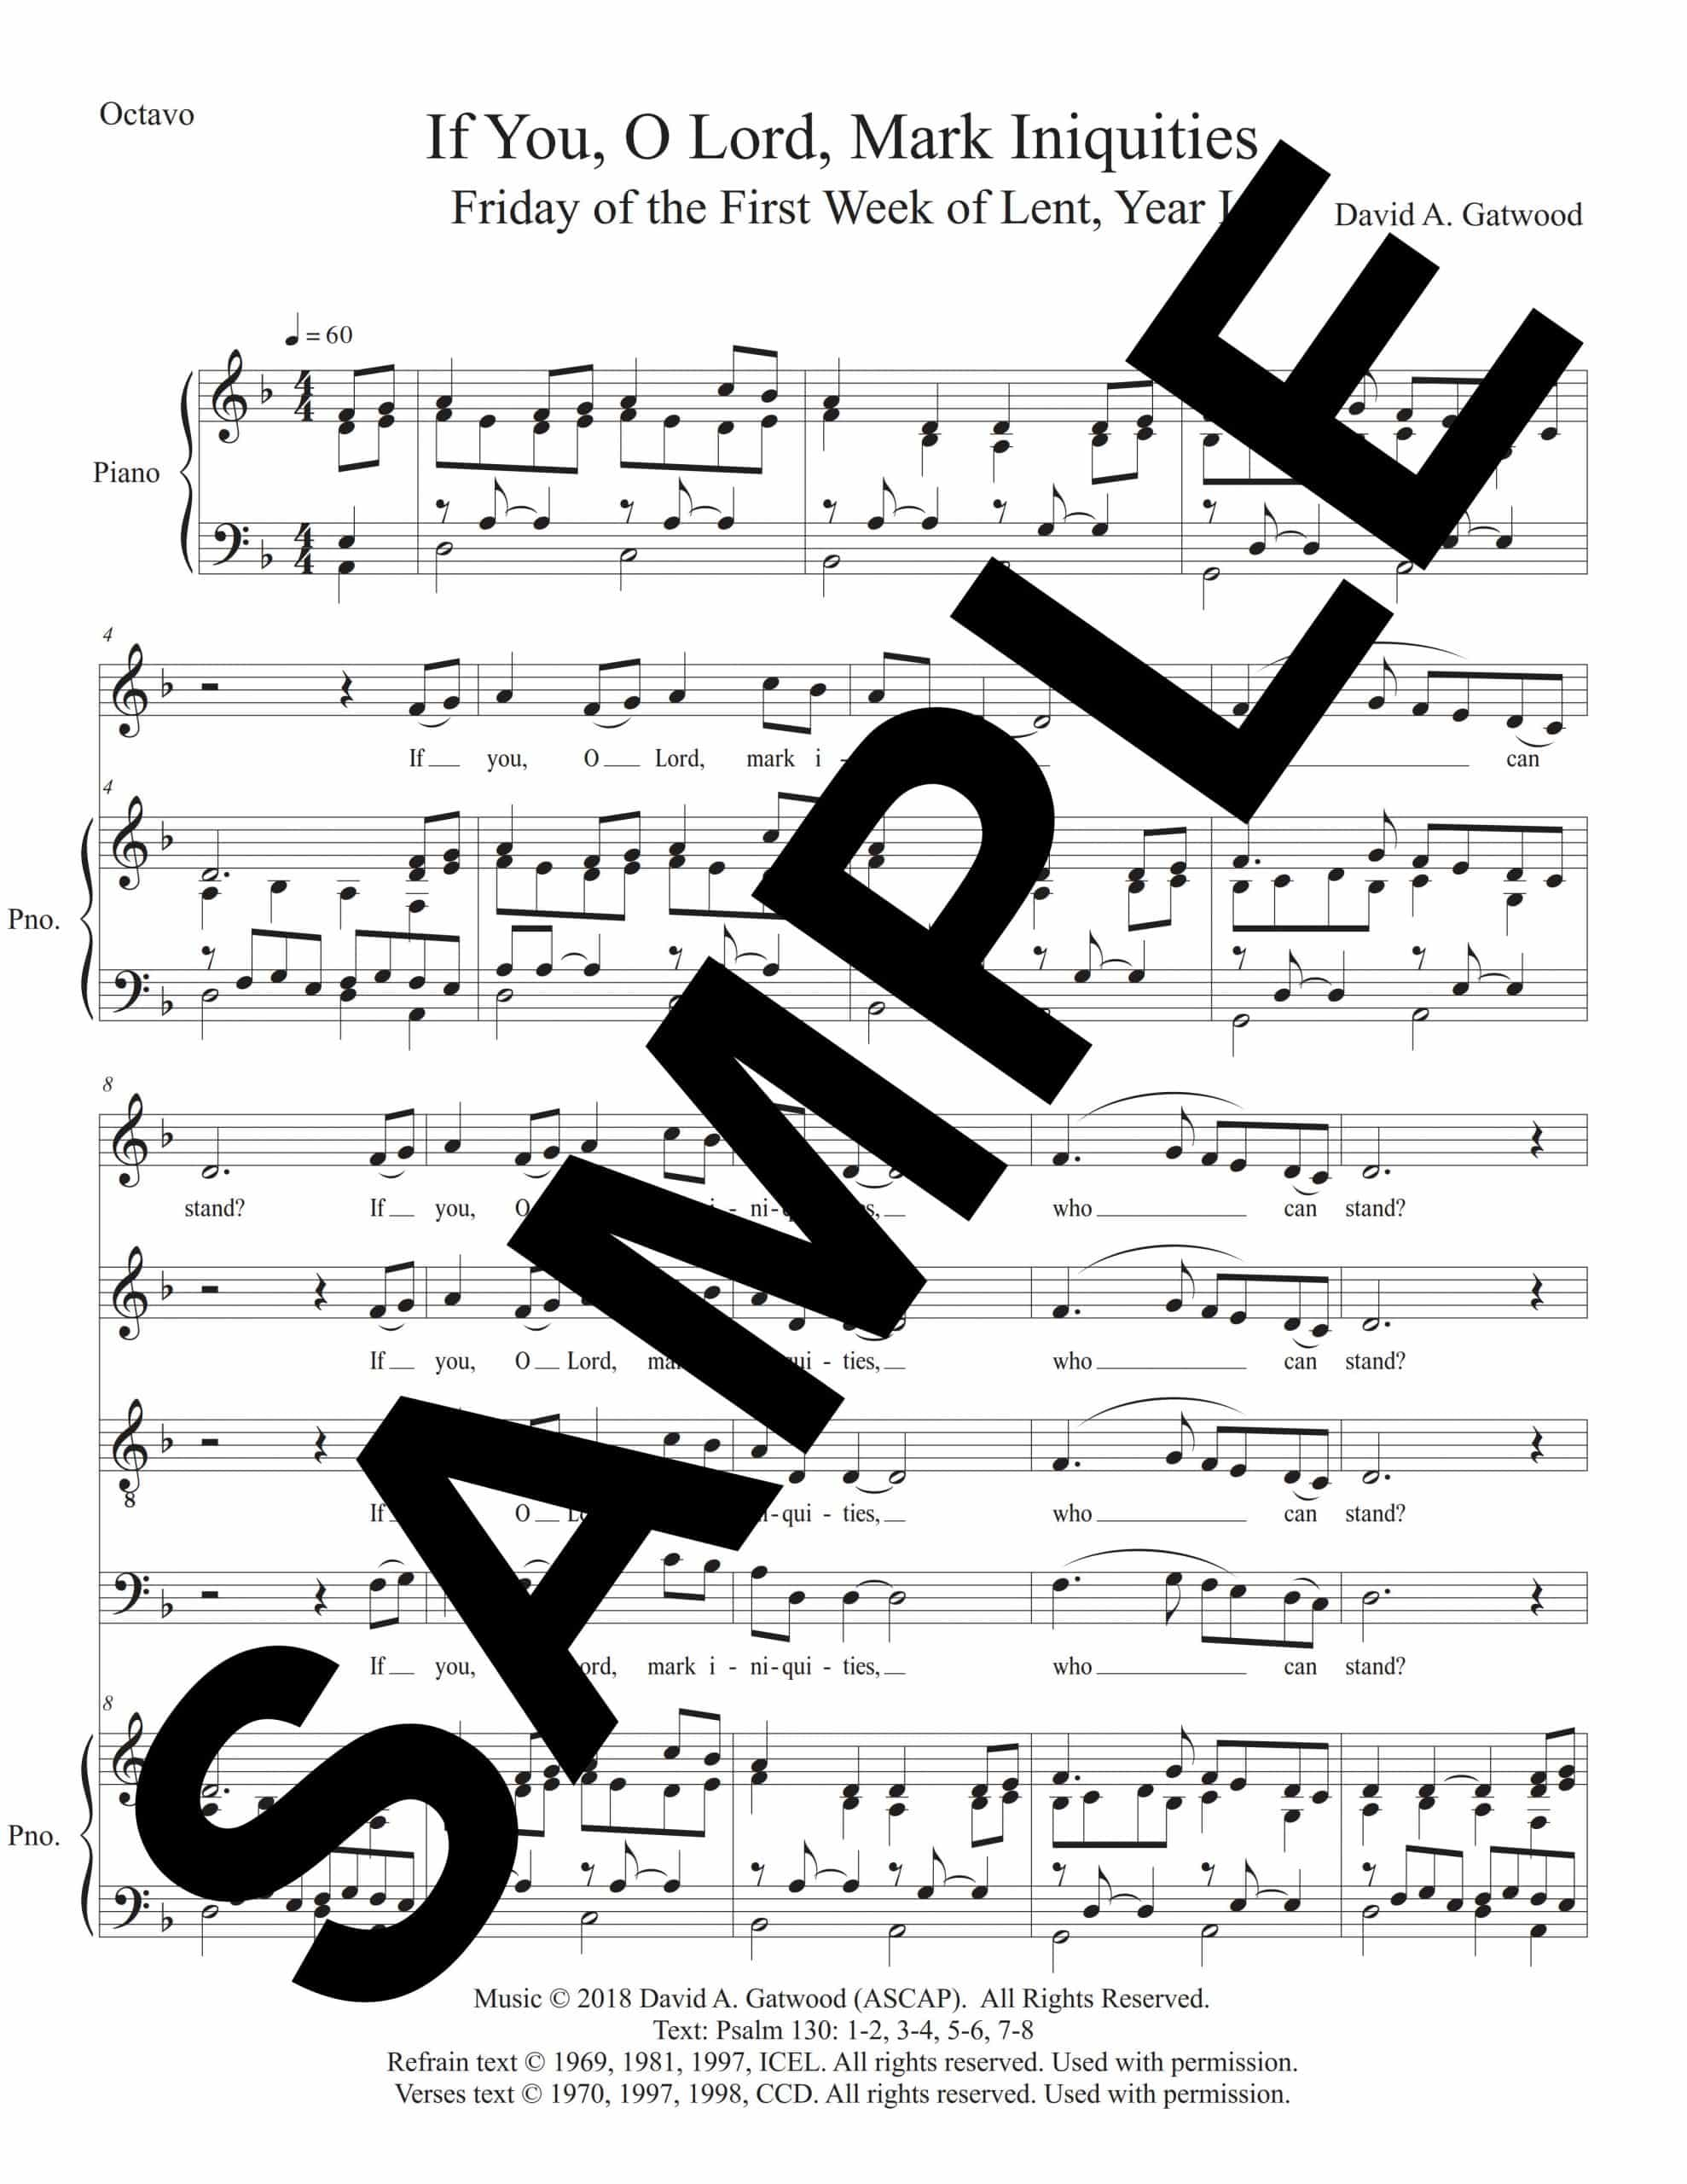 If You O Lord Mark Iniquities Psalm 130 Friday 1 Lent Year I Sample Octavo scaled